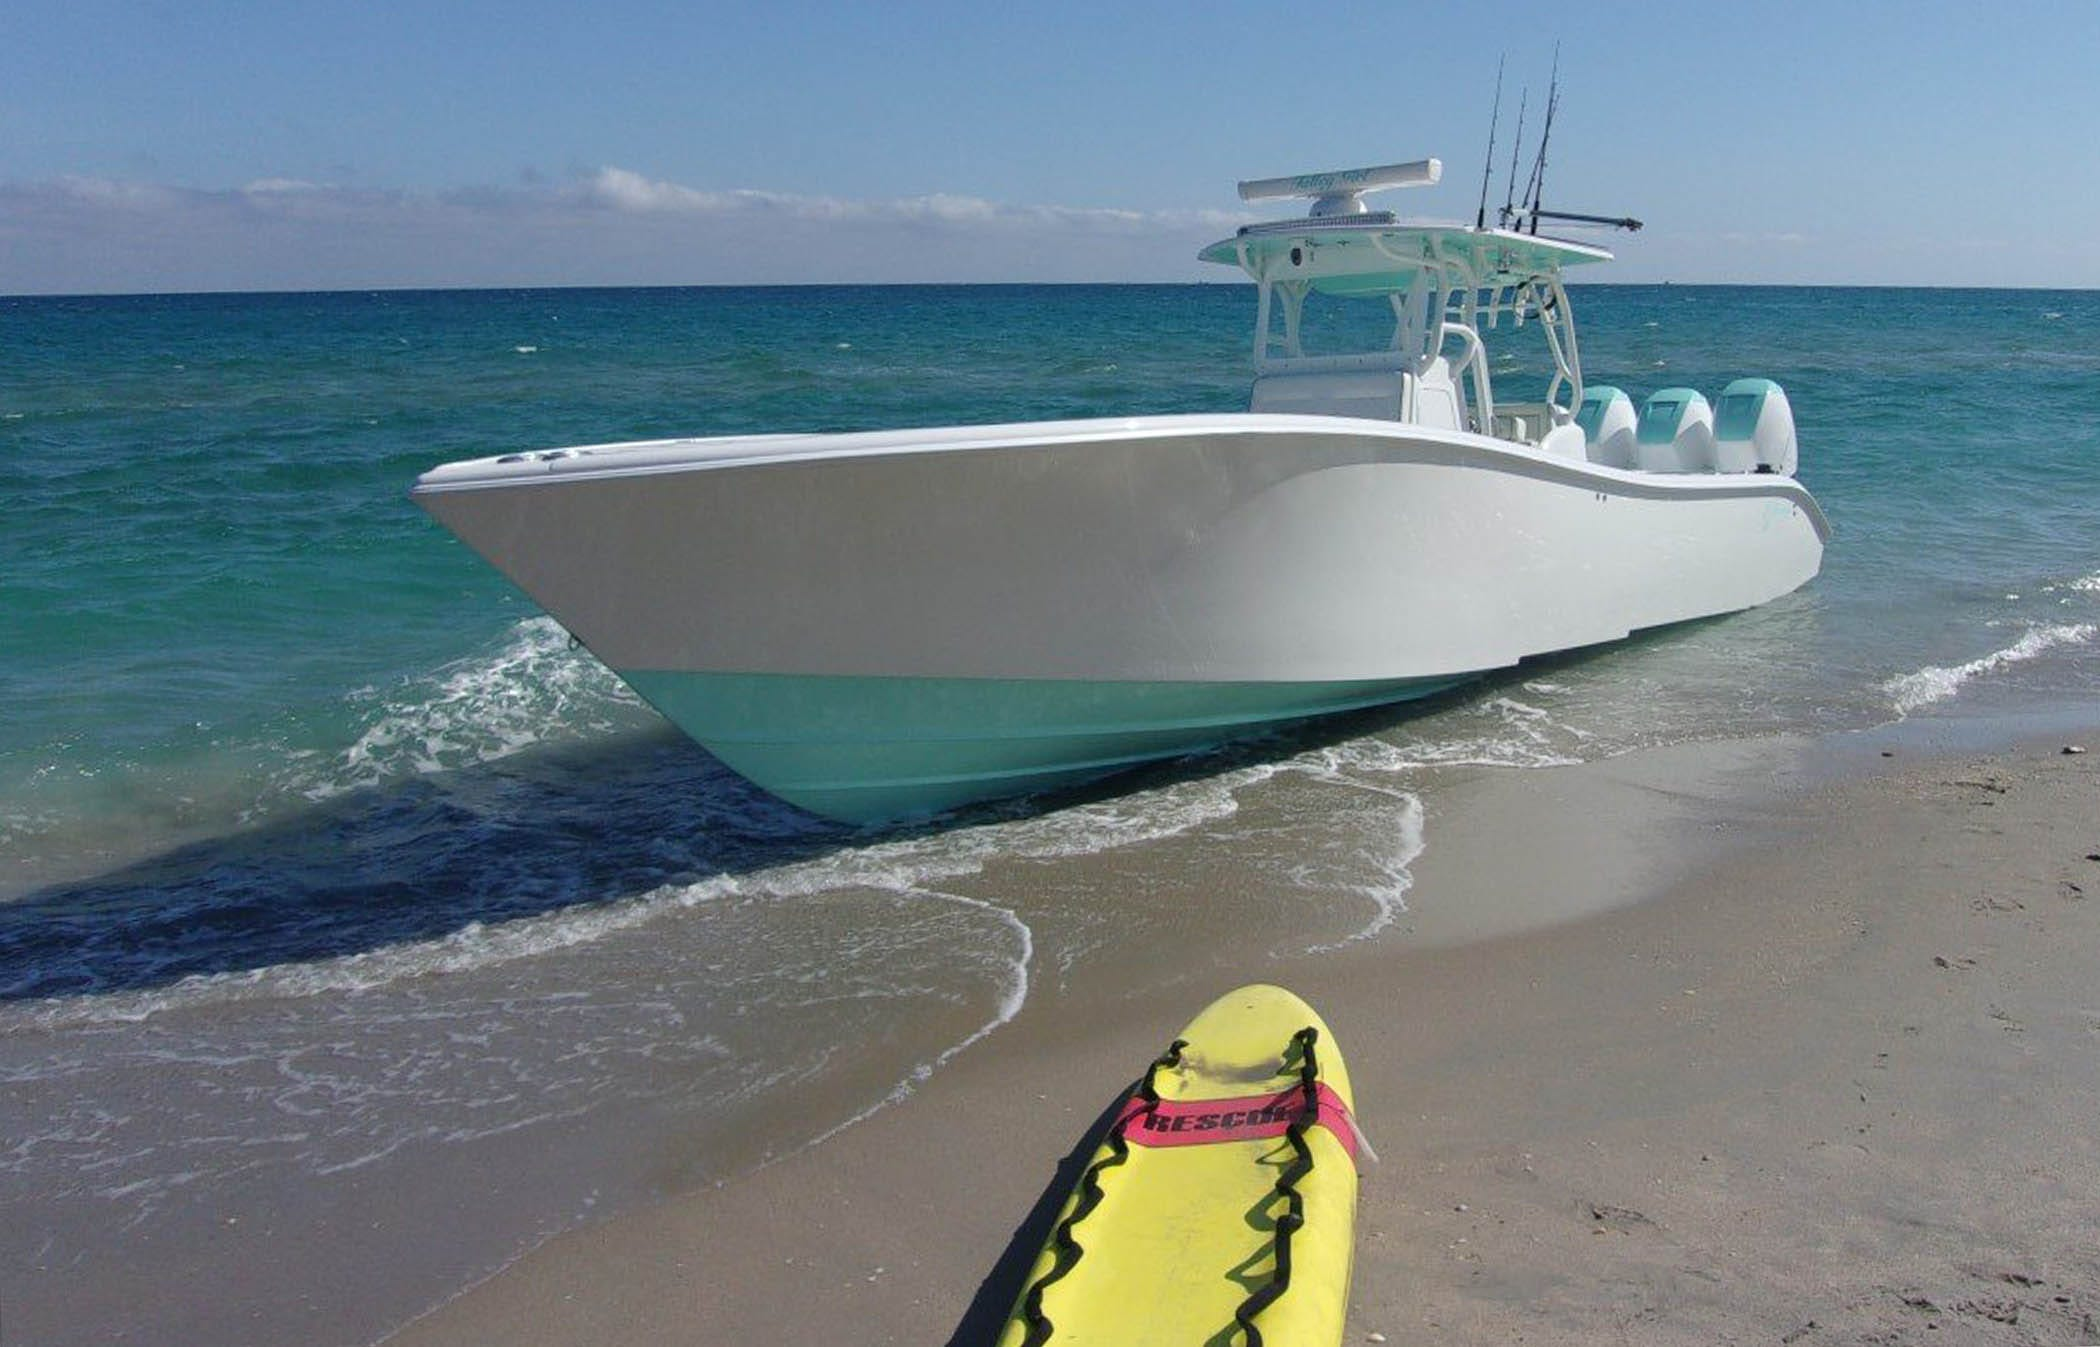 The boat Talley Girl after it struck Carter Viss in the ocean on Nov. 28, 2019. The boat ferried Viss to shore and beached itself so rescue crews could move the severely injured snorkeler to an ambulance.